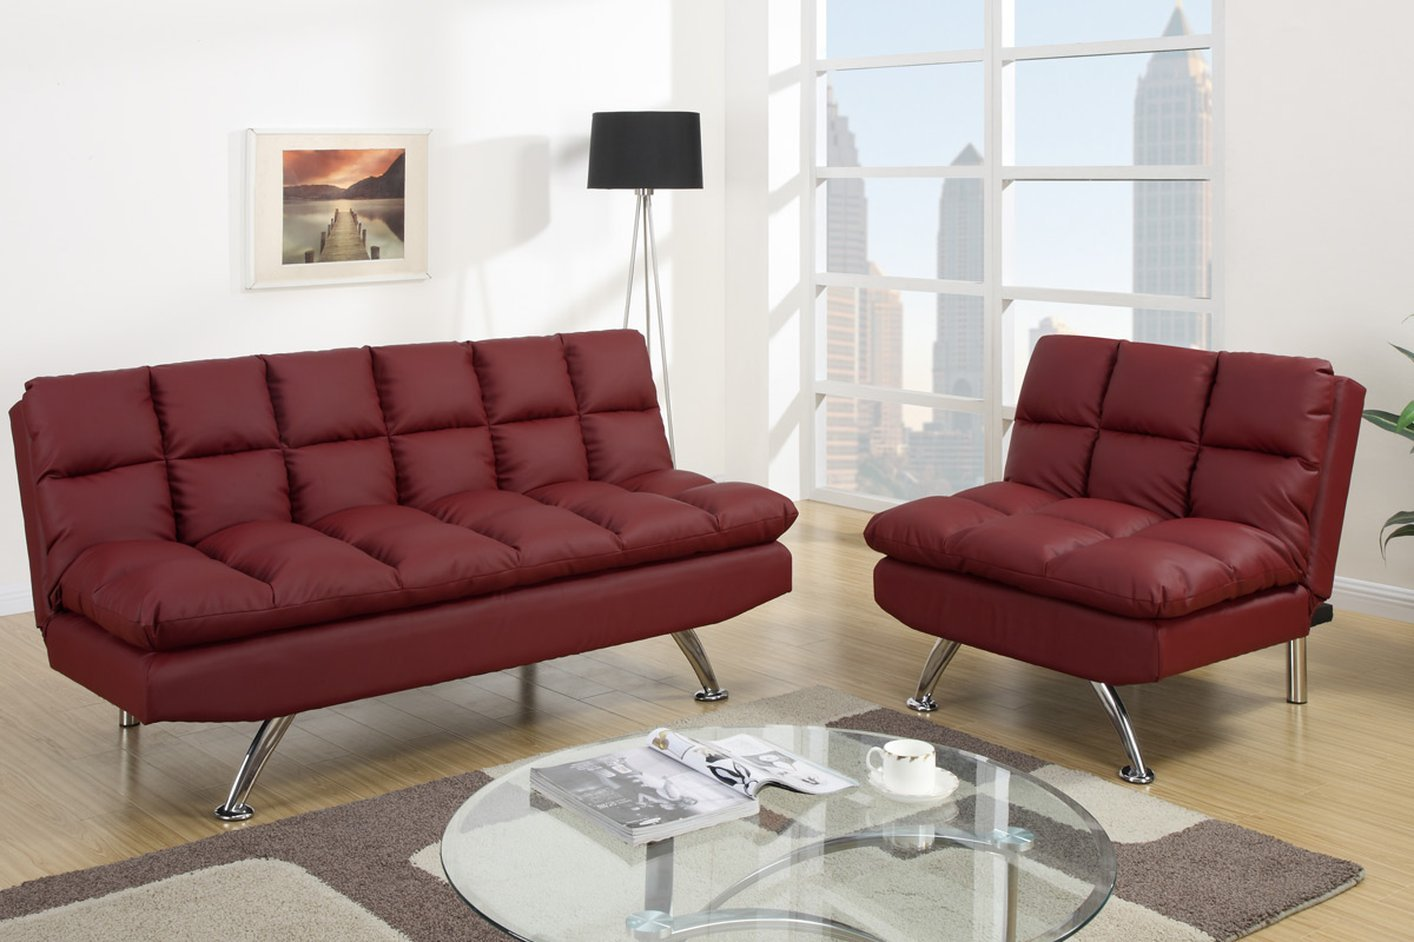 white twin sofa bed 3 seater leather with recliner red futon